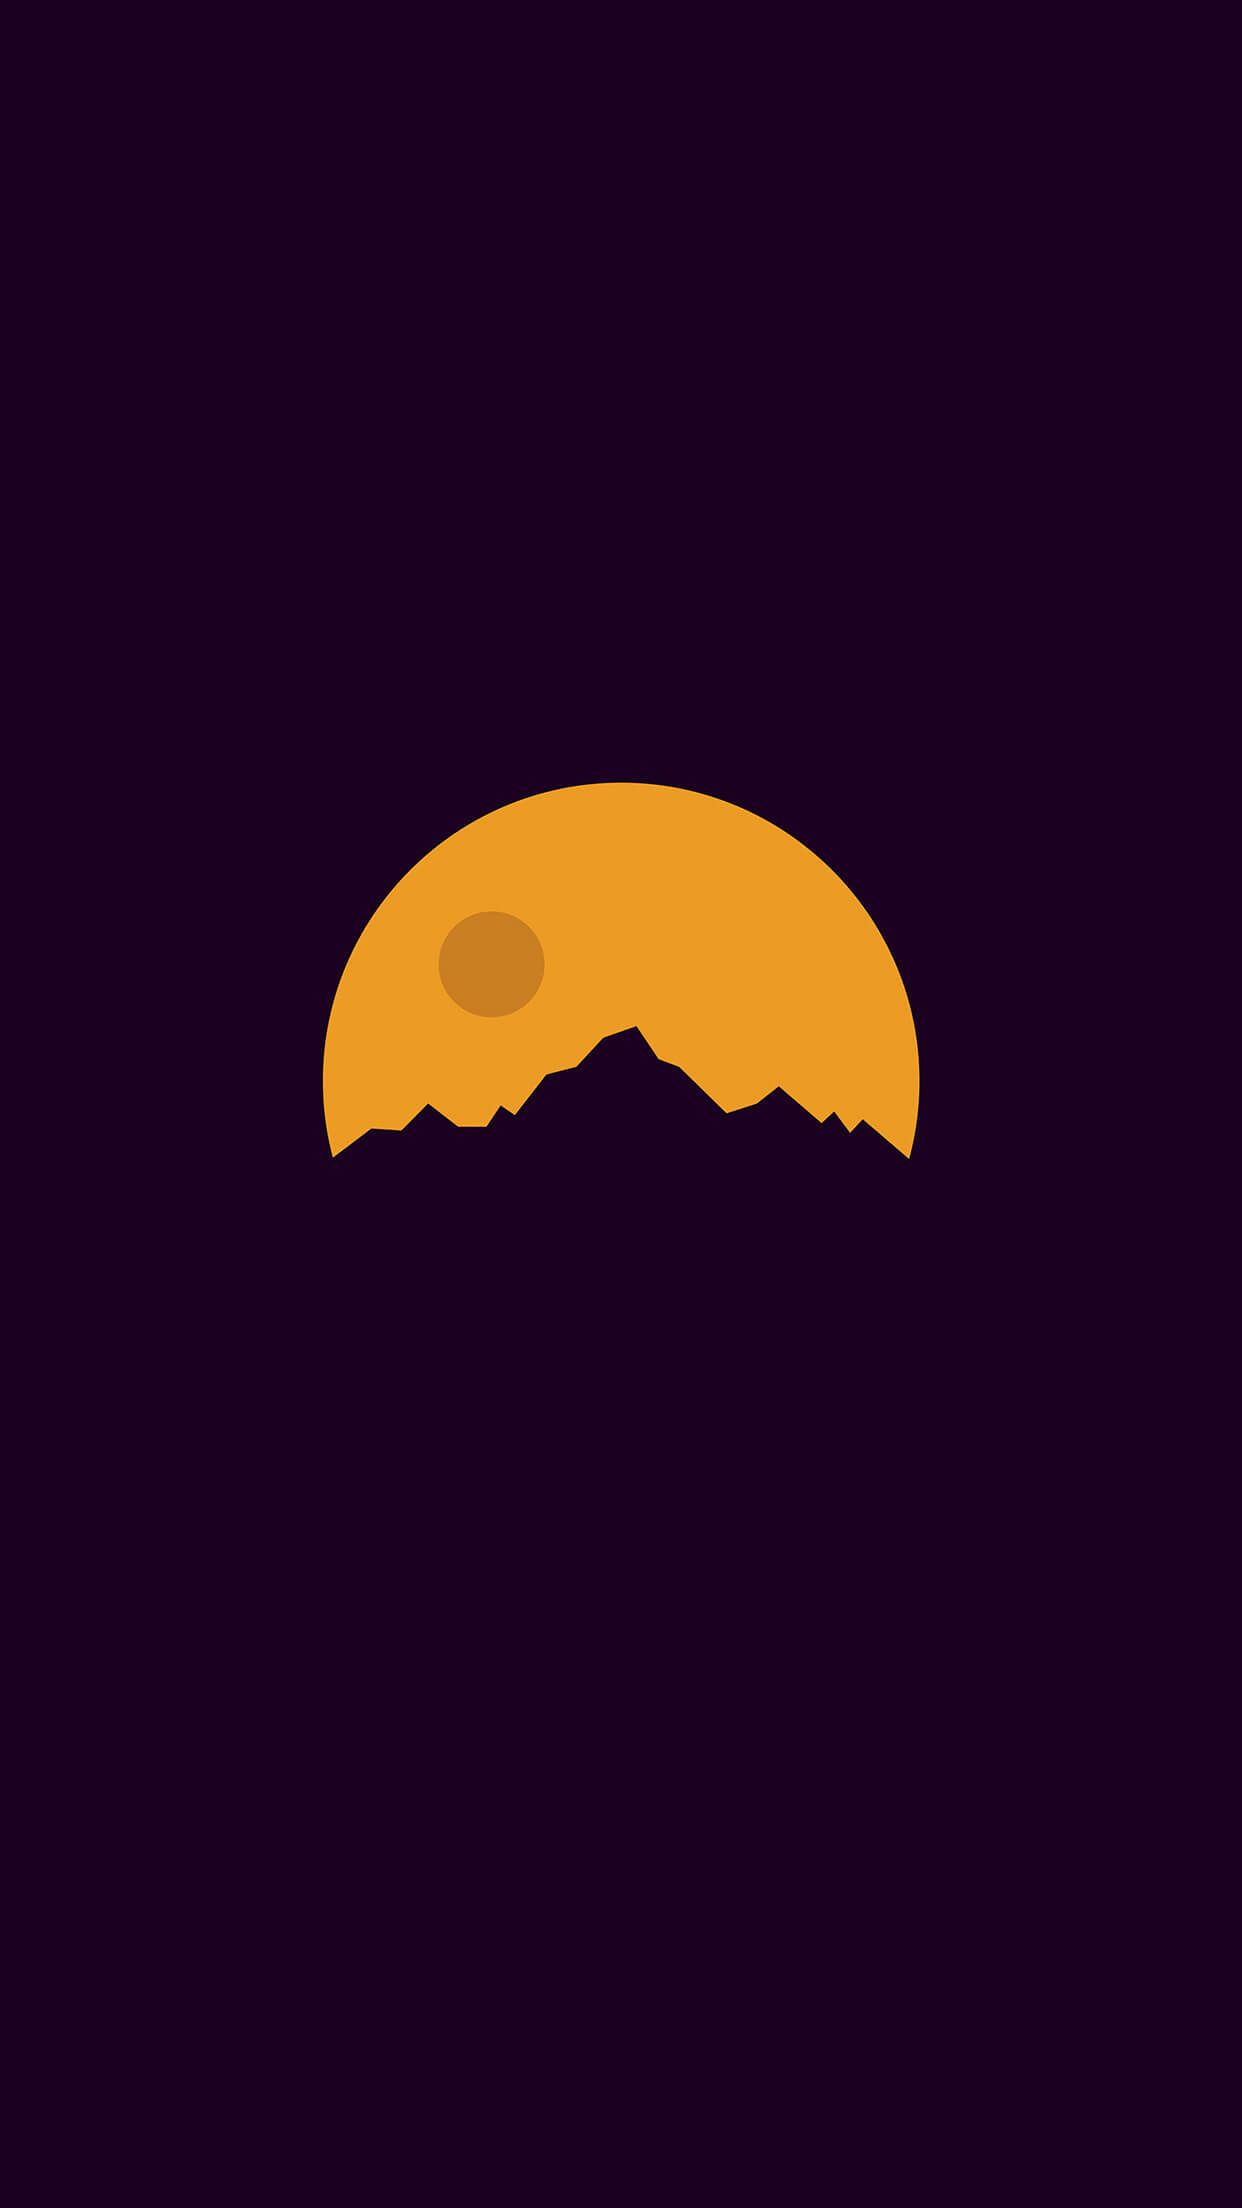 Best Minimal Android Wallpapers - Wallpaper Cave